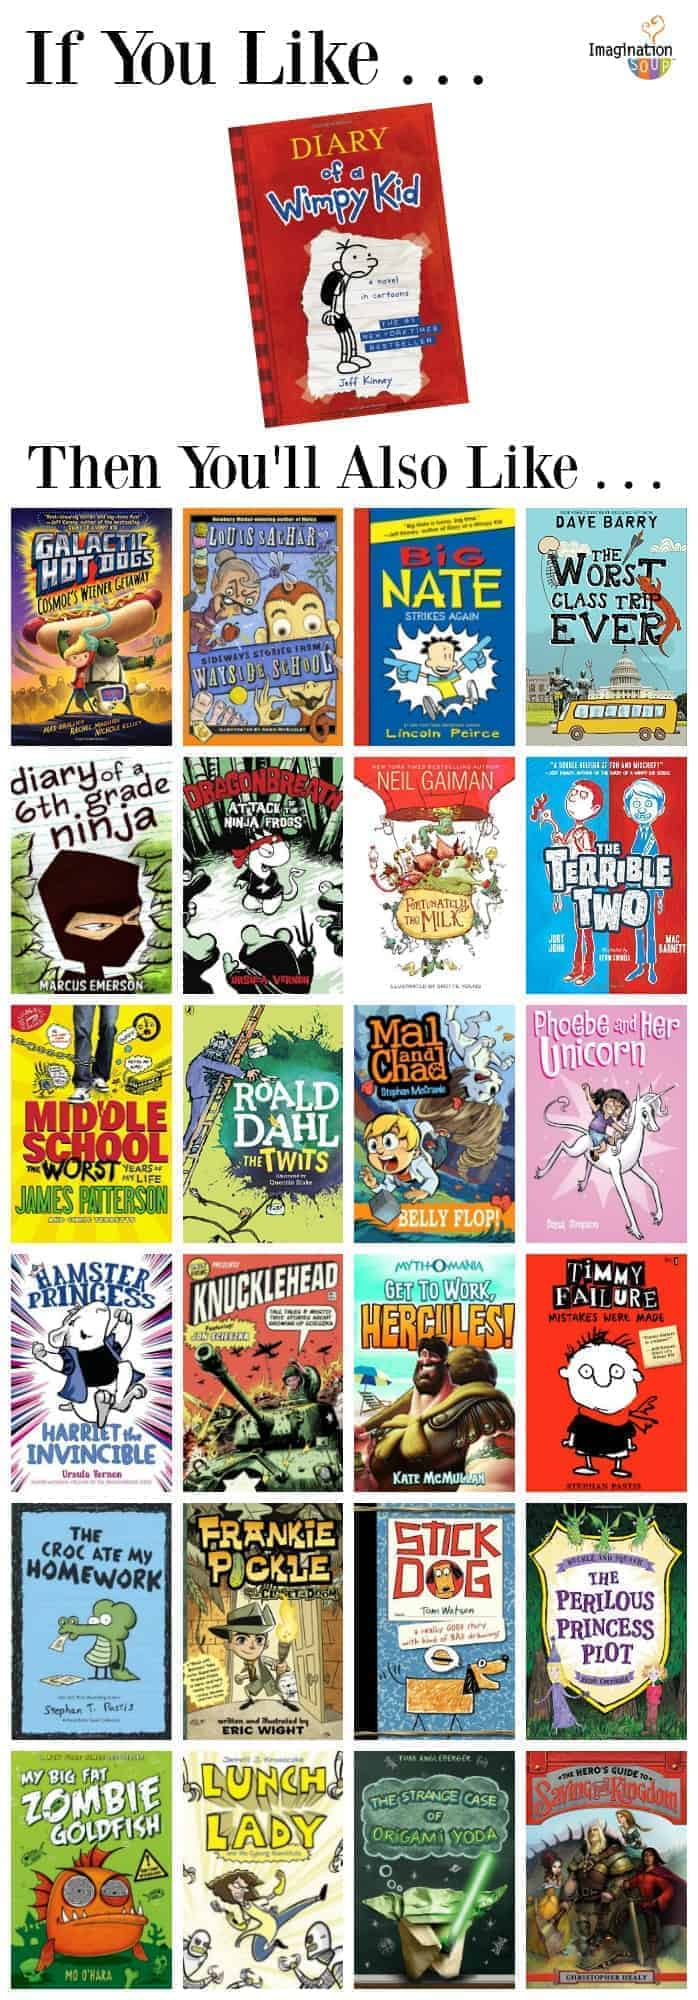 books for kids who like Diary of a Wimpy Kid